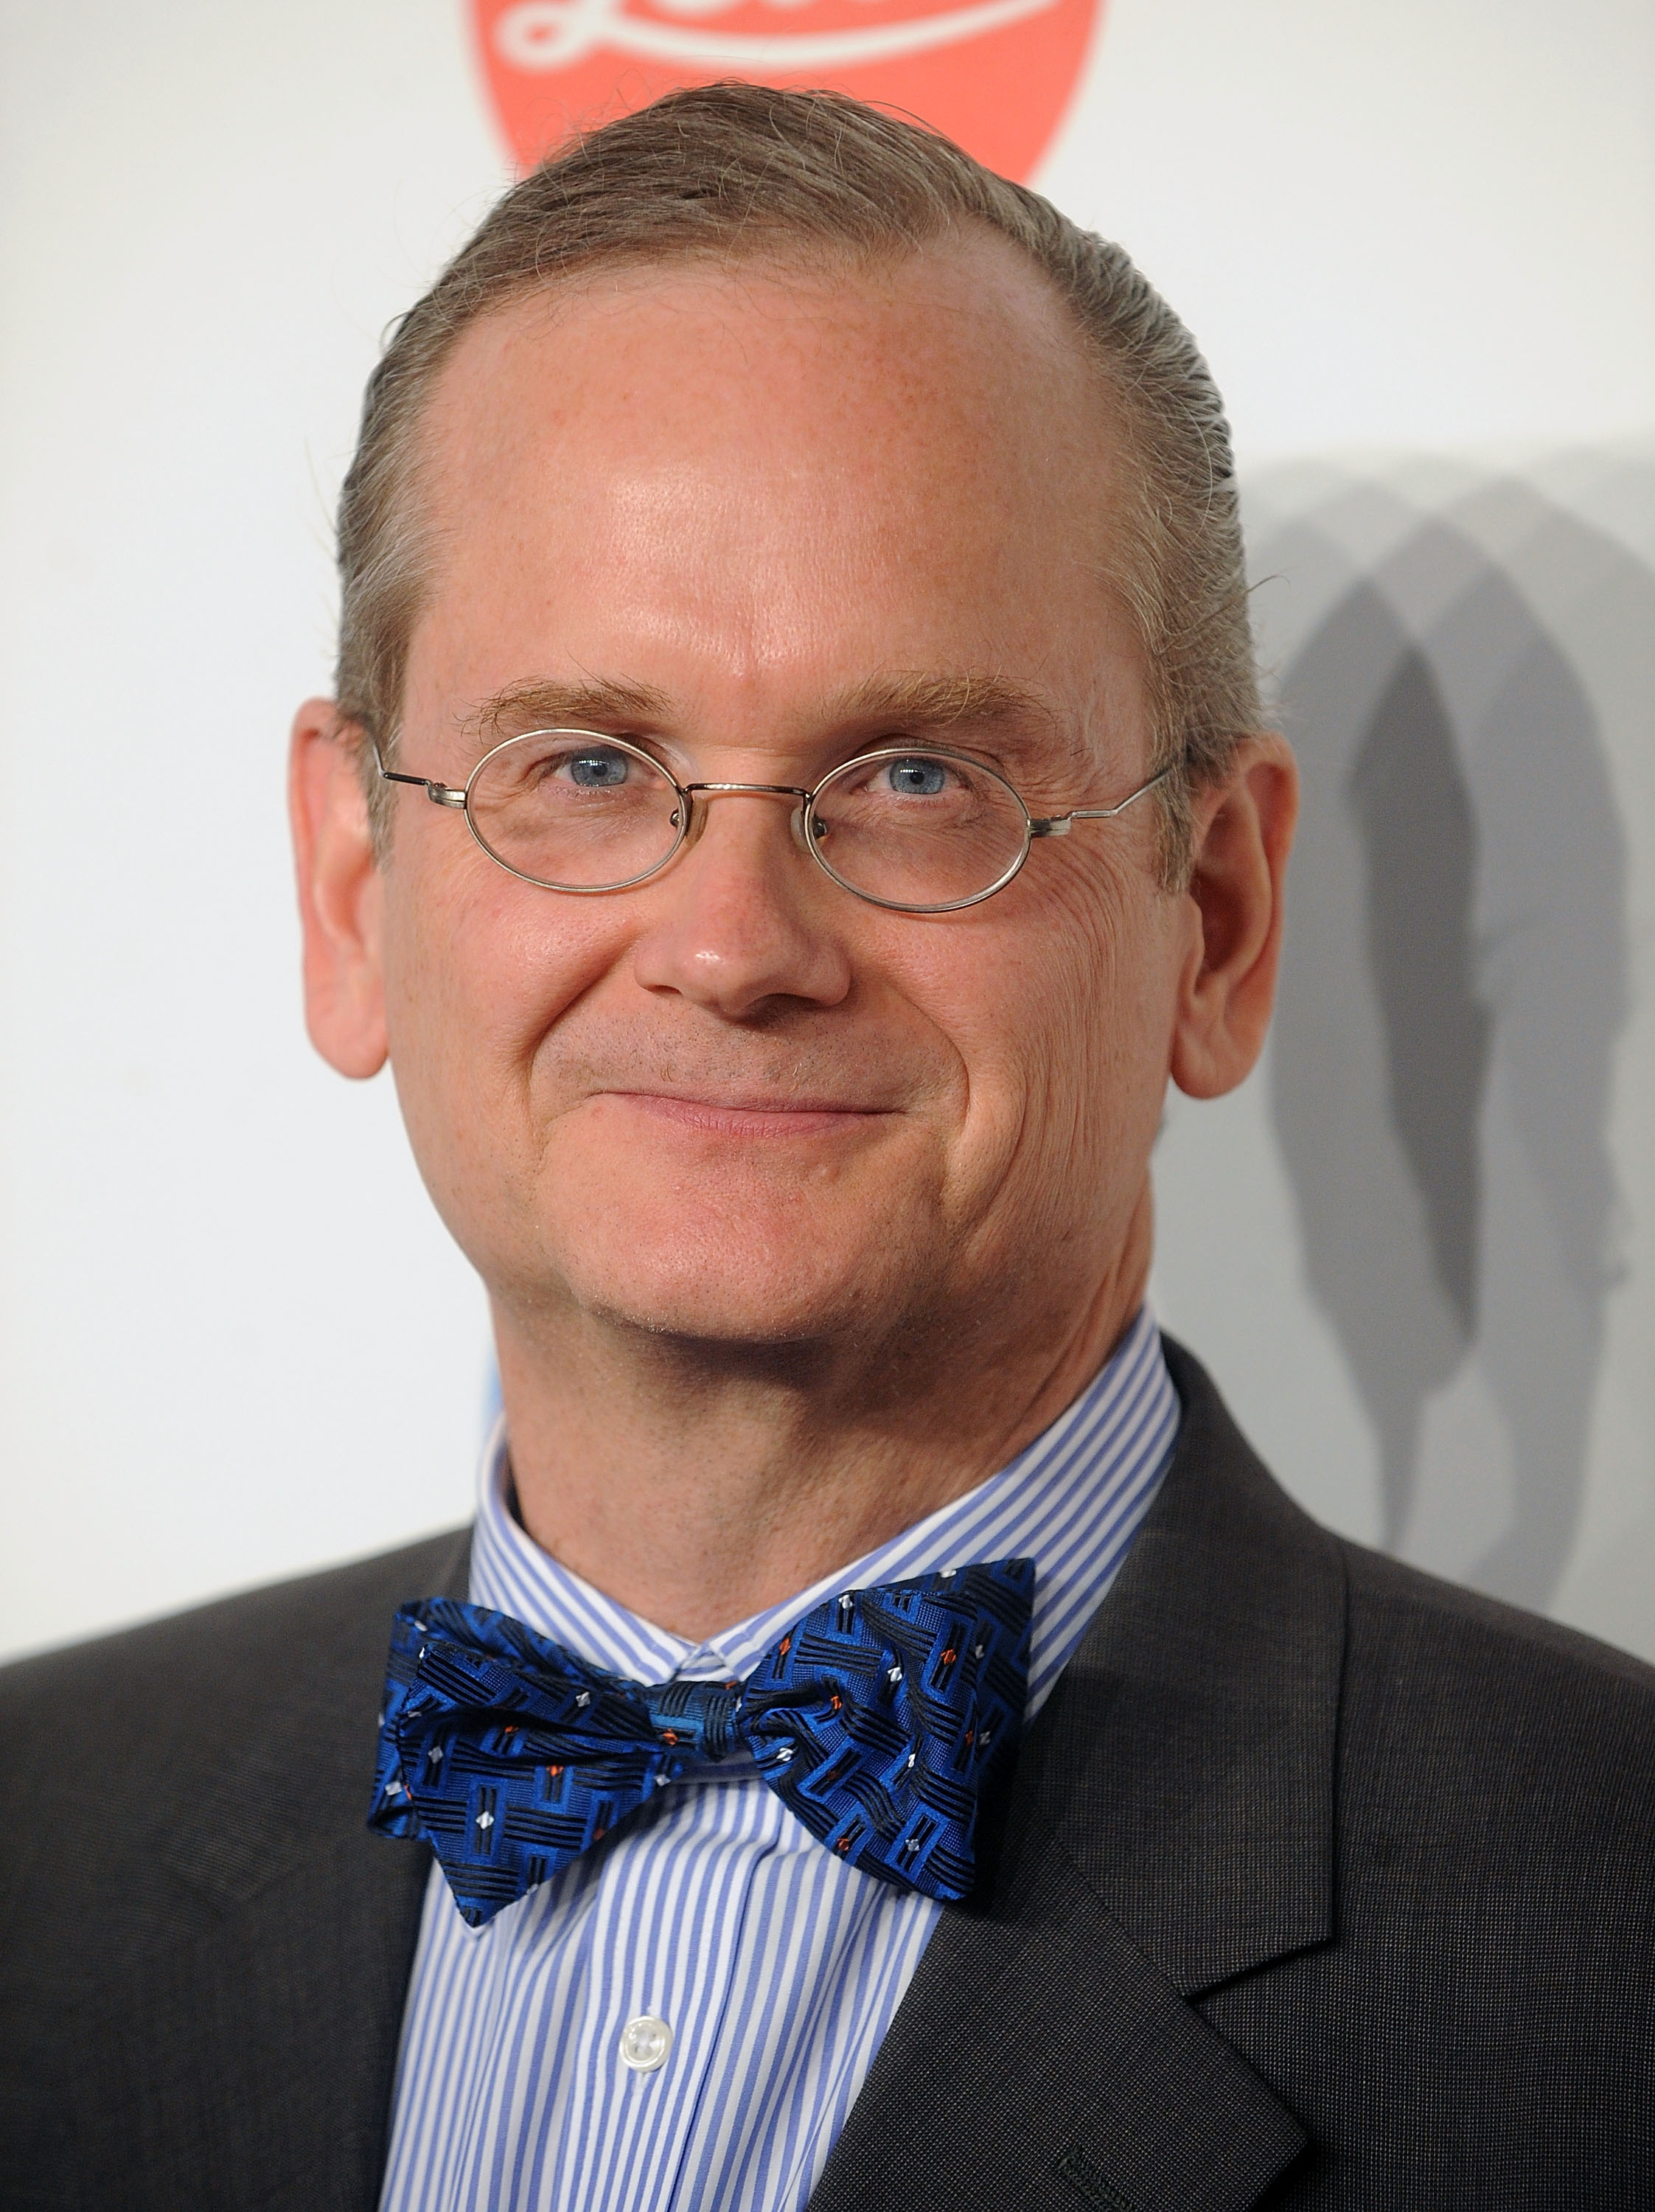 Lawrence Lessig attends 18th Annual Webby Awards on May 19, 2014 in New York, United States.